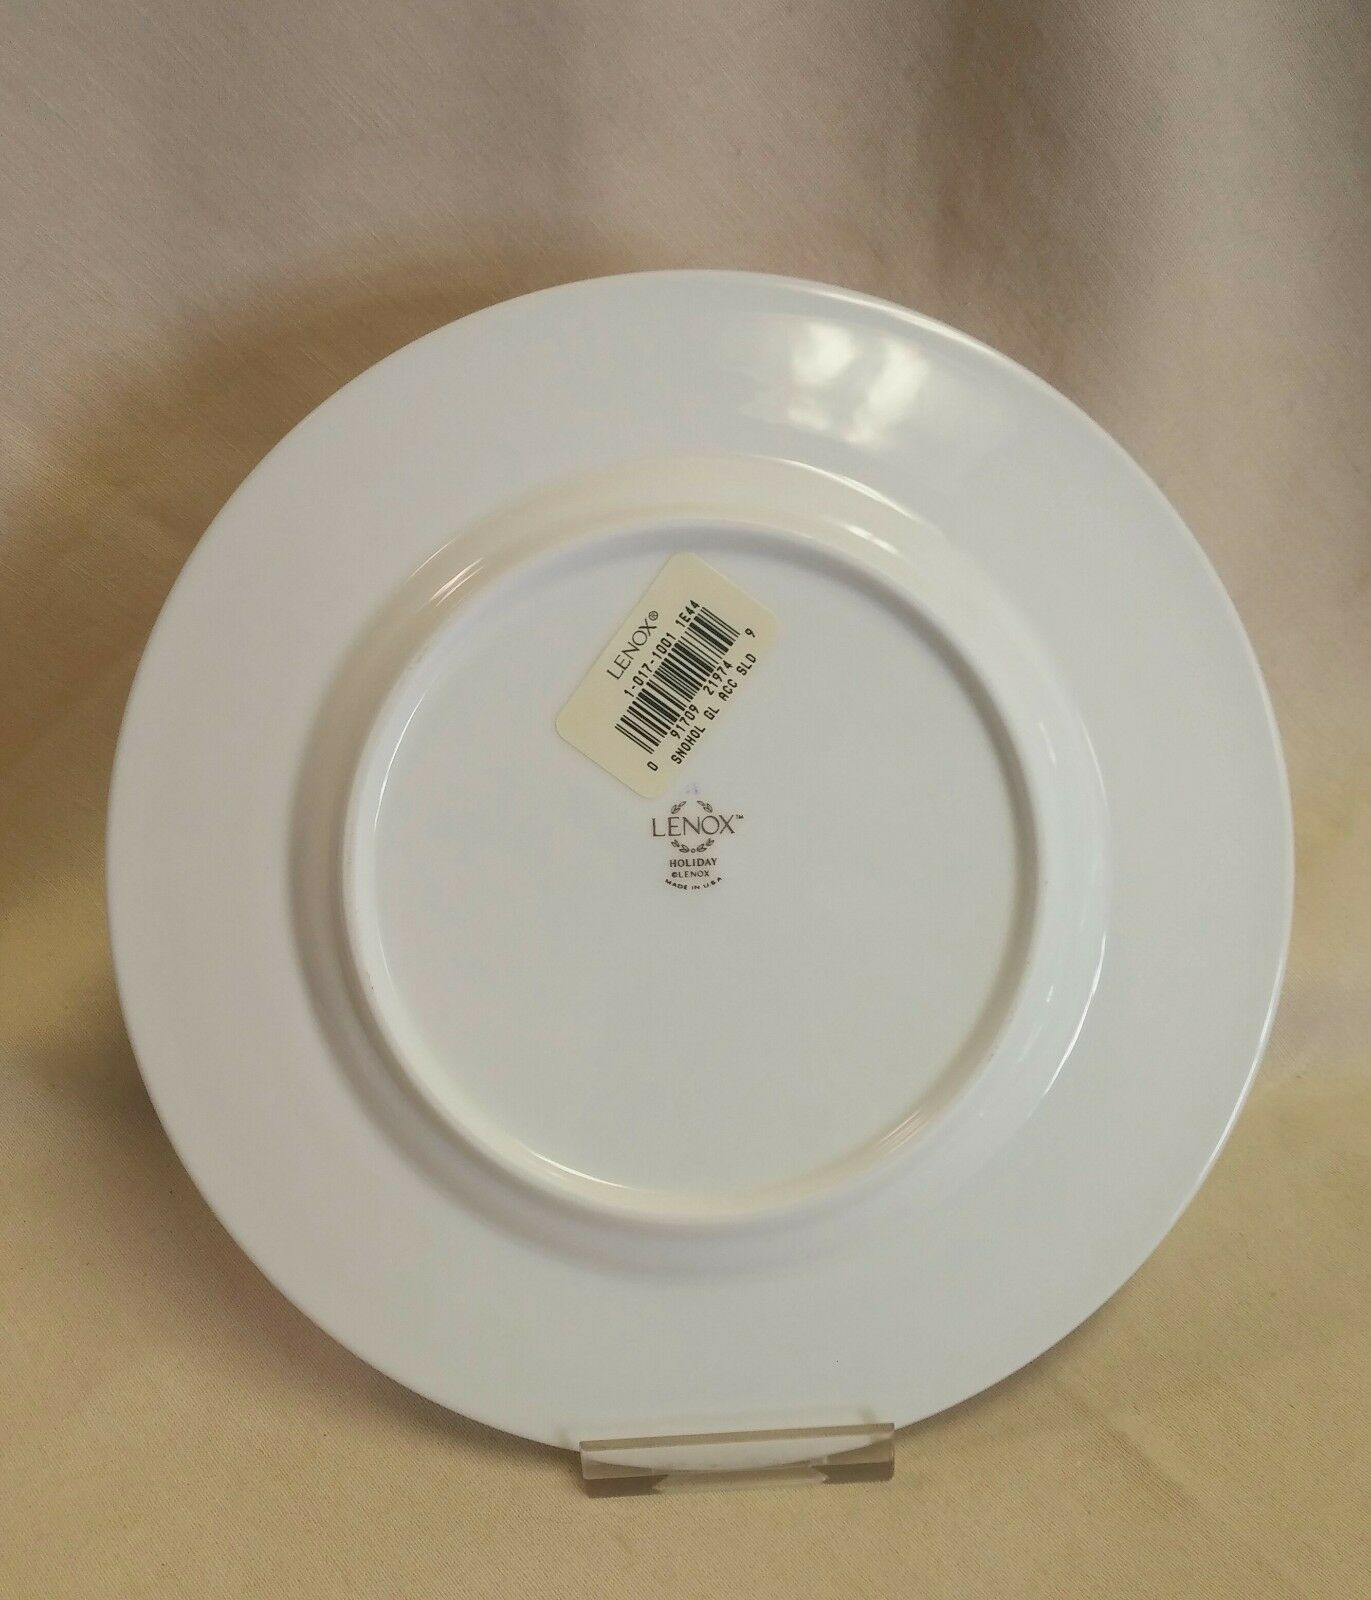 LENOX SNOW HOLLY GOLD Accent Plate Set Of 4 - $99.95